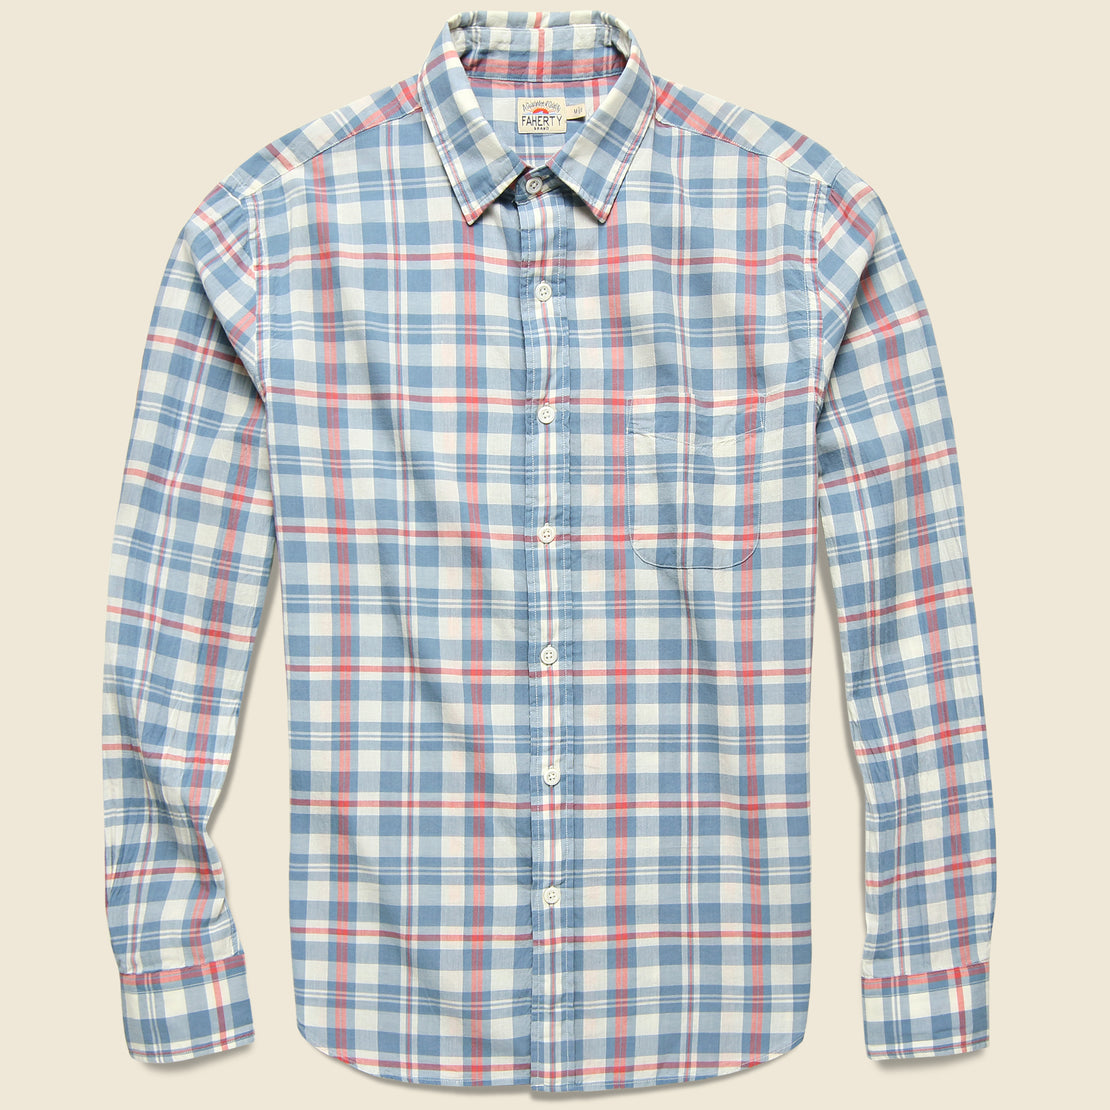 Faherty Ventura Shirt - Washed Cream Blue